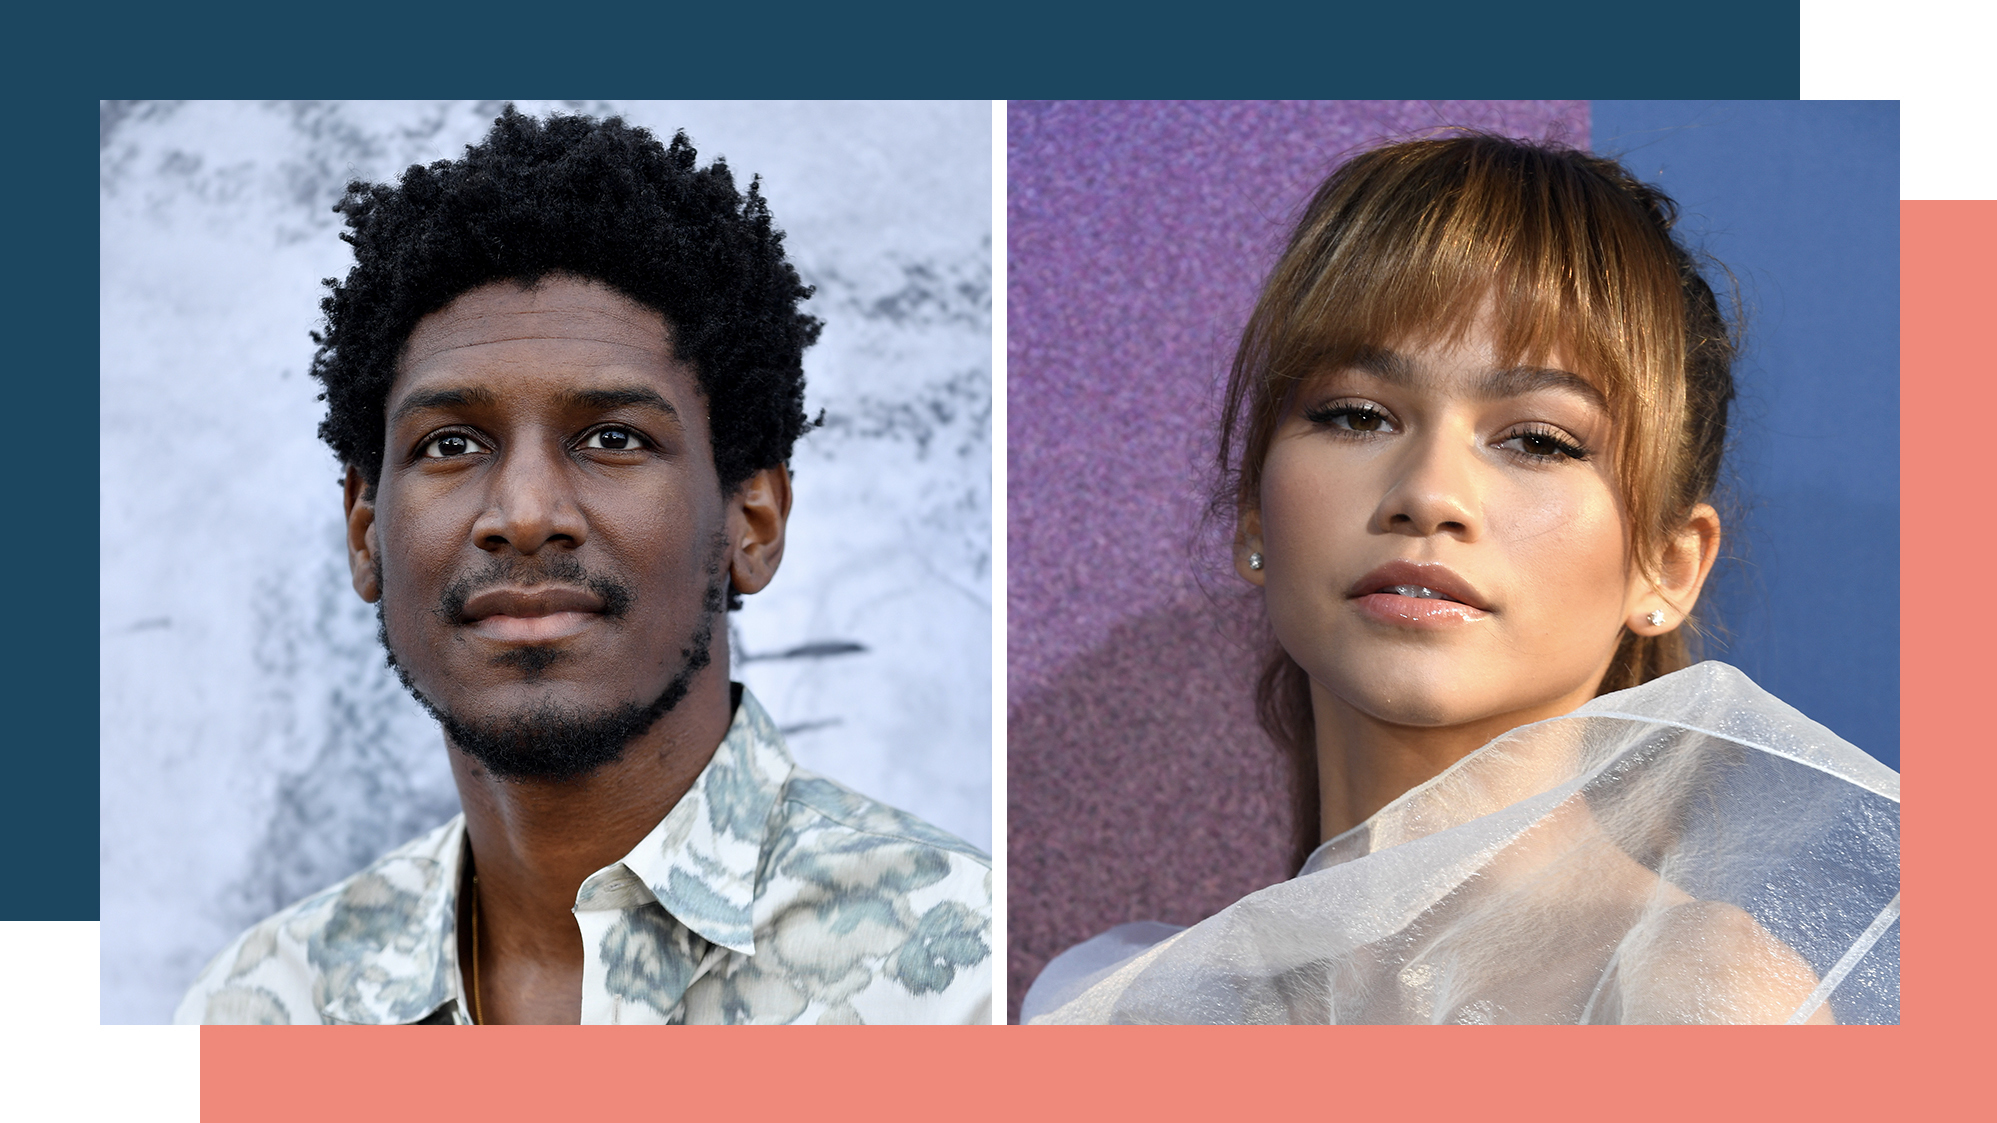 The Collaborations That Shaped 2019